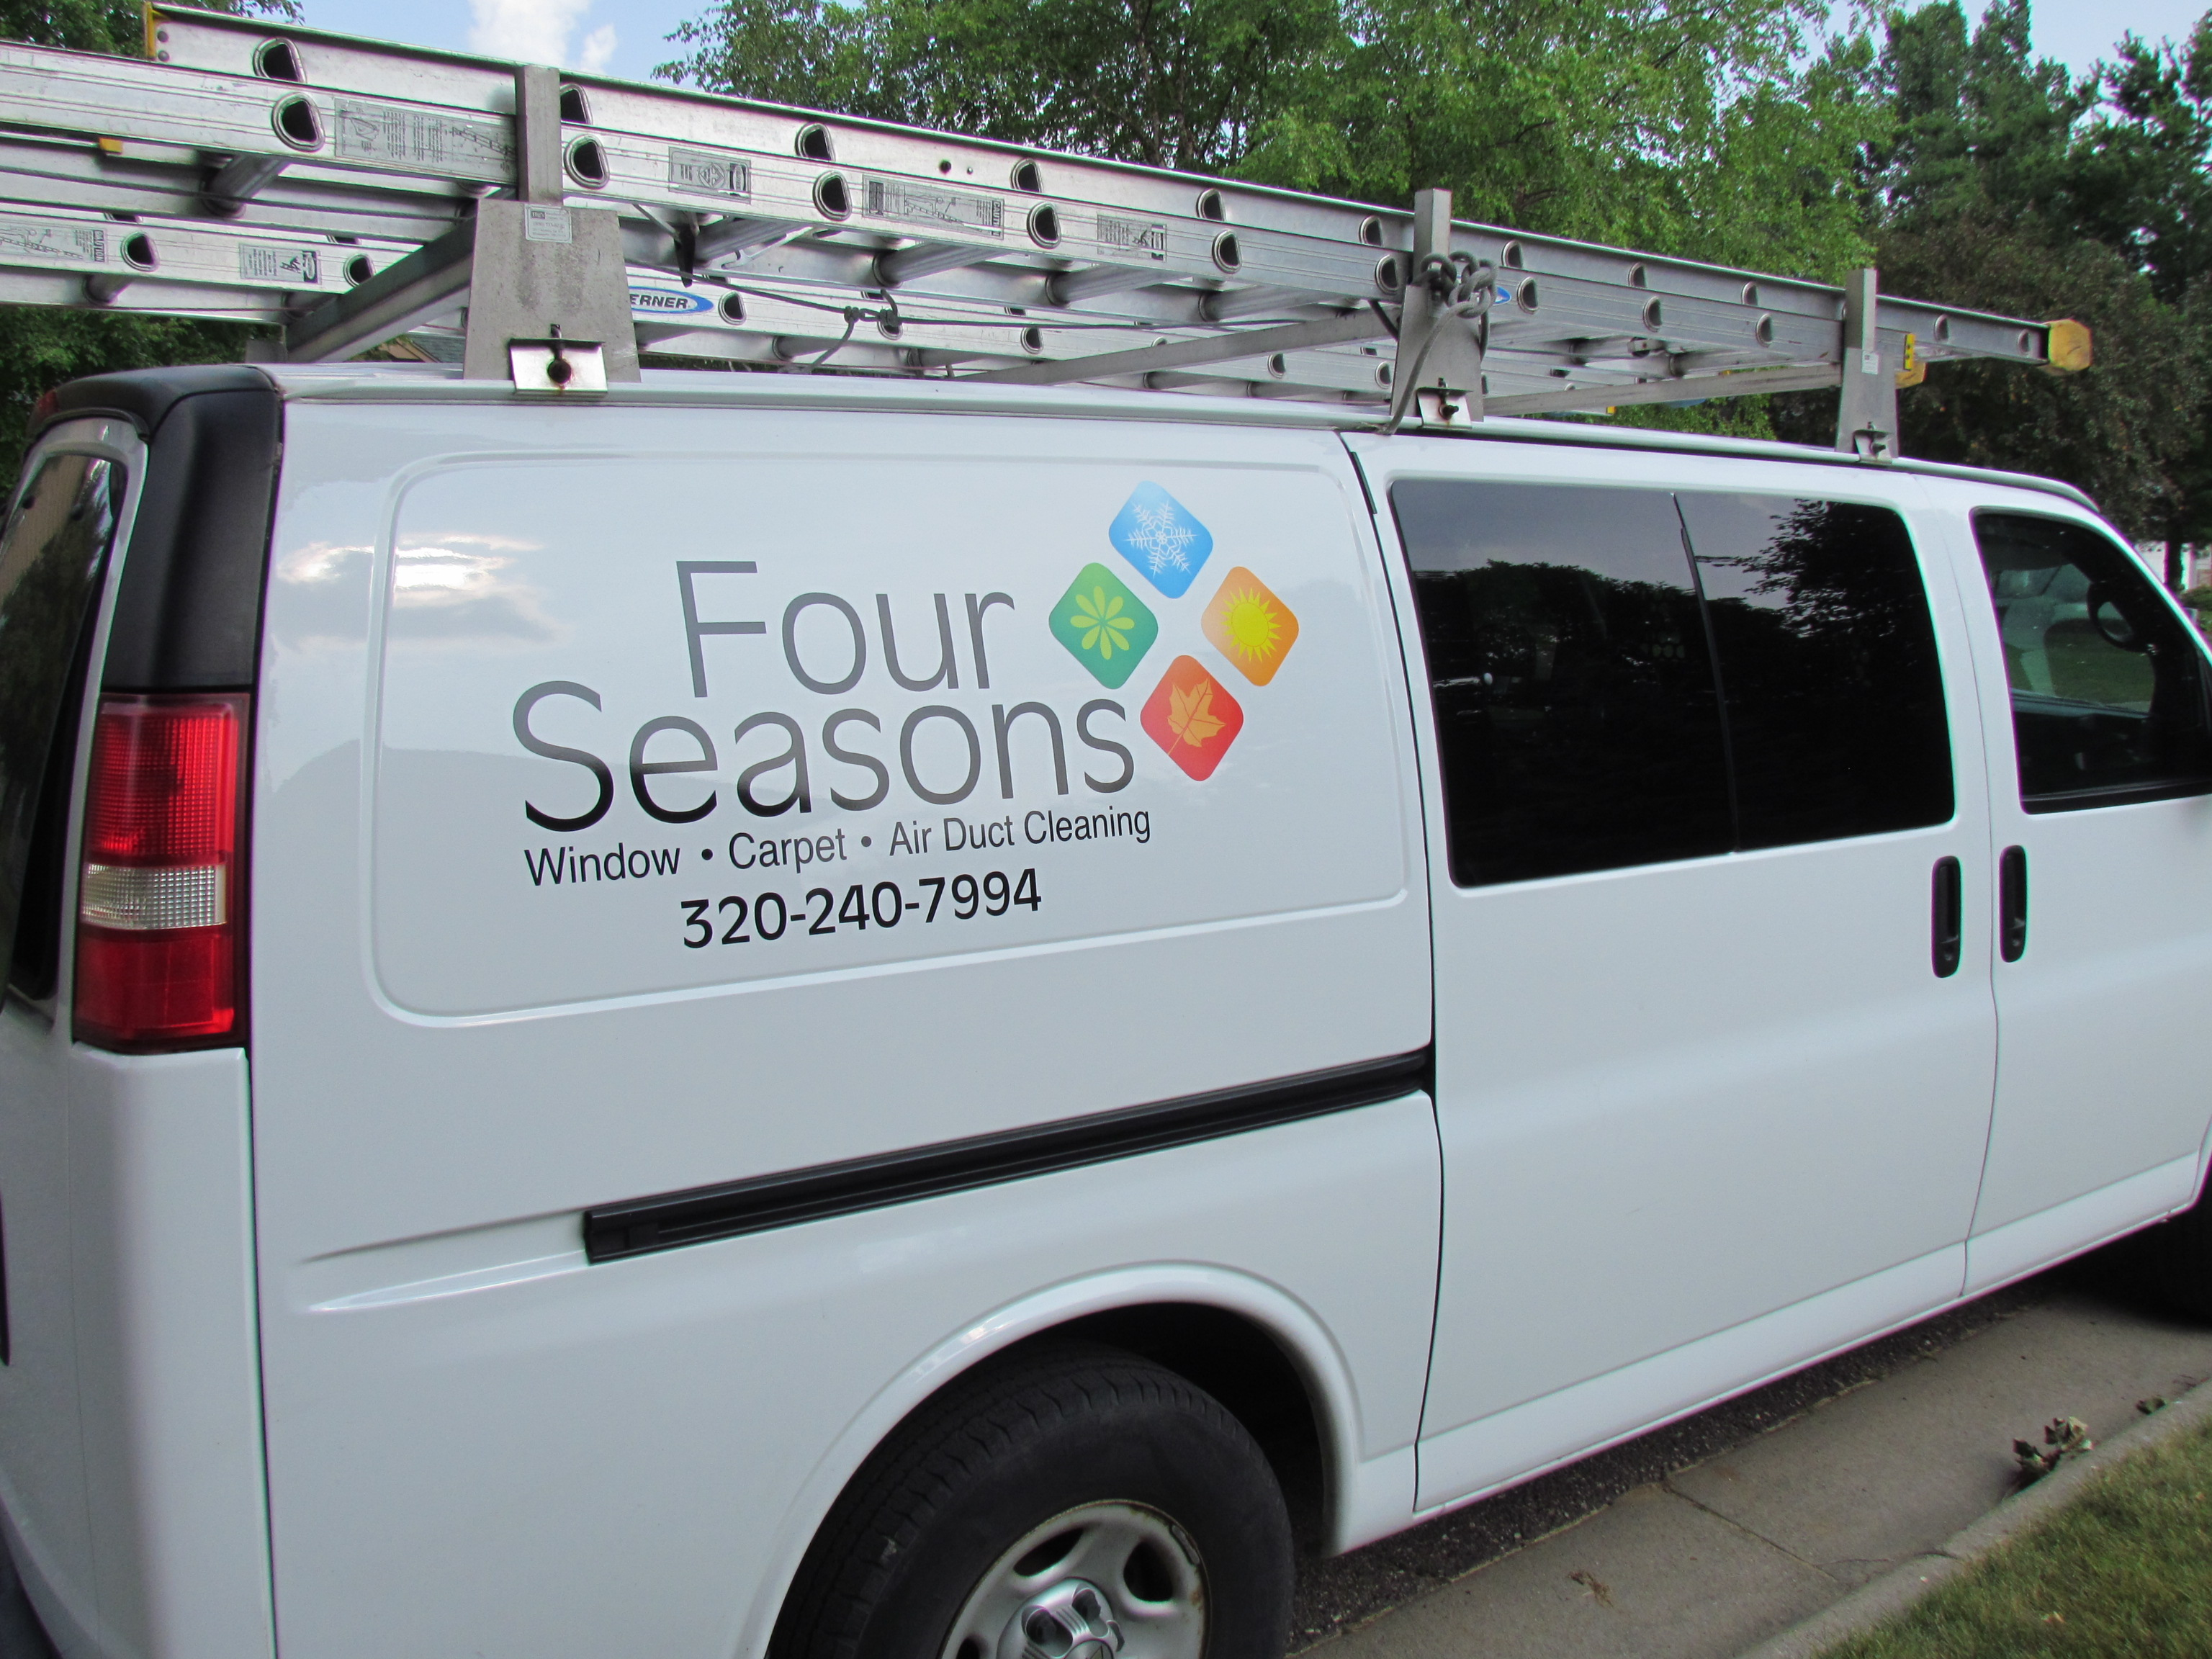 Four seasons heating and air conditioning chicago - Why Four Seasons Heating Air Conditioning And Plumbing Chicago Il